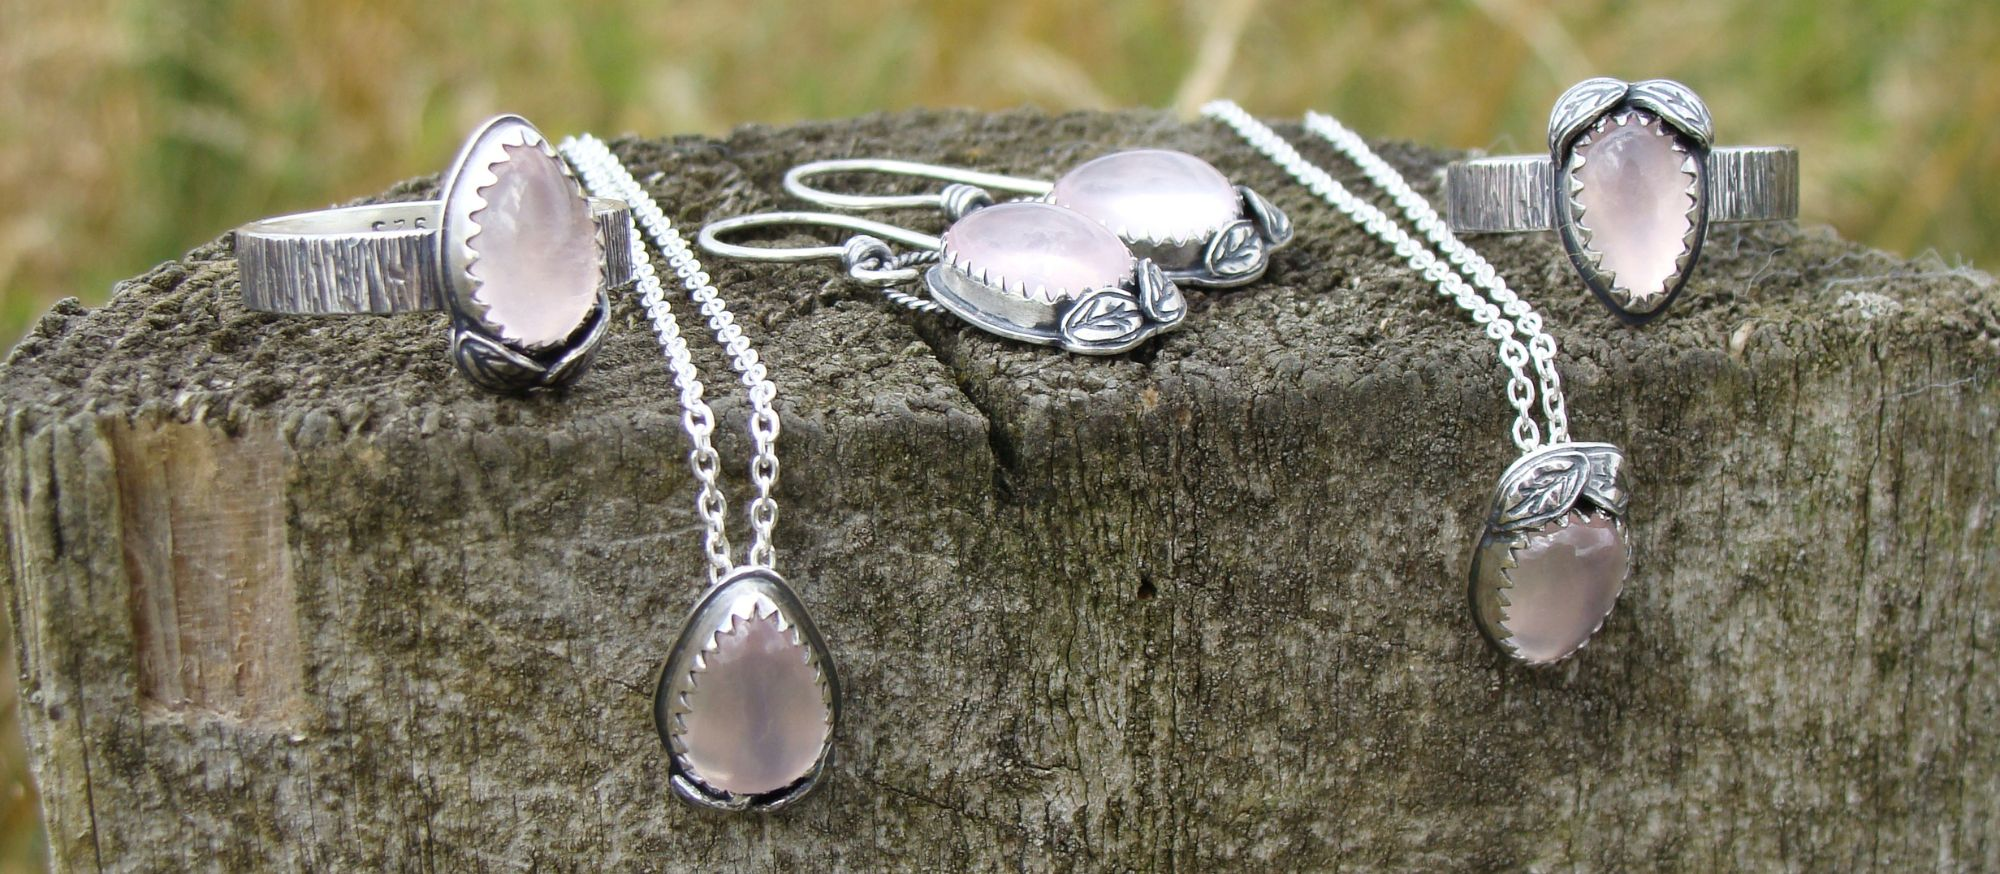 Sterling Silver Rose Quartz Woodland Collection Handcrafted from Teardrop Cabochons and silver flowers